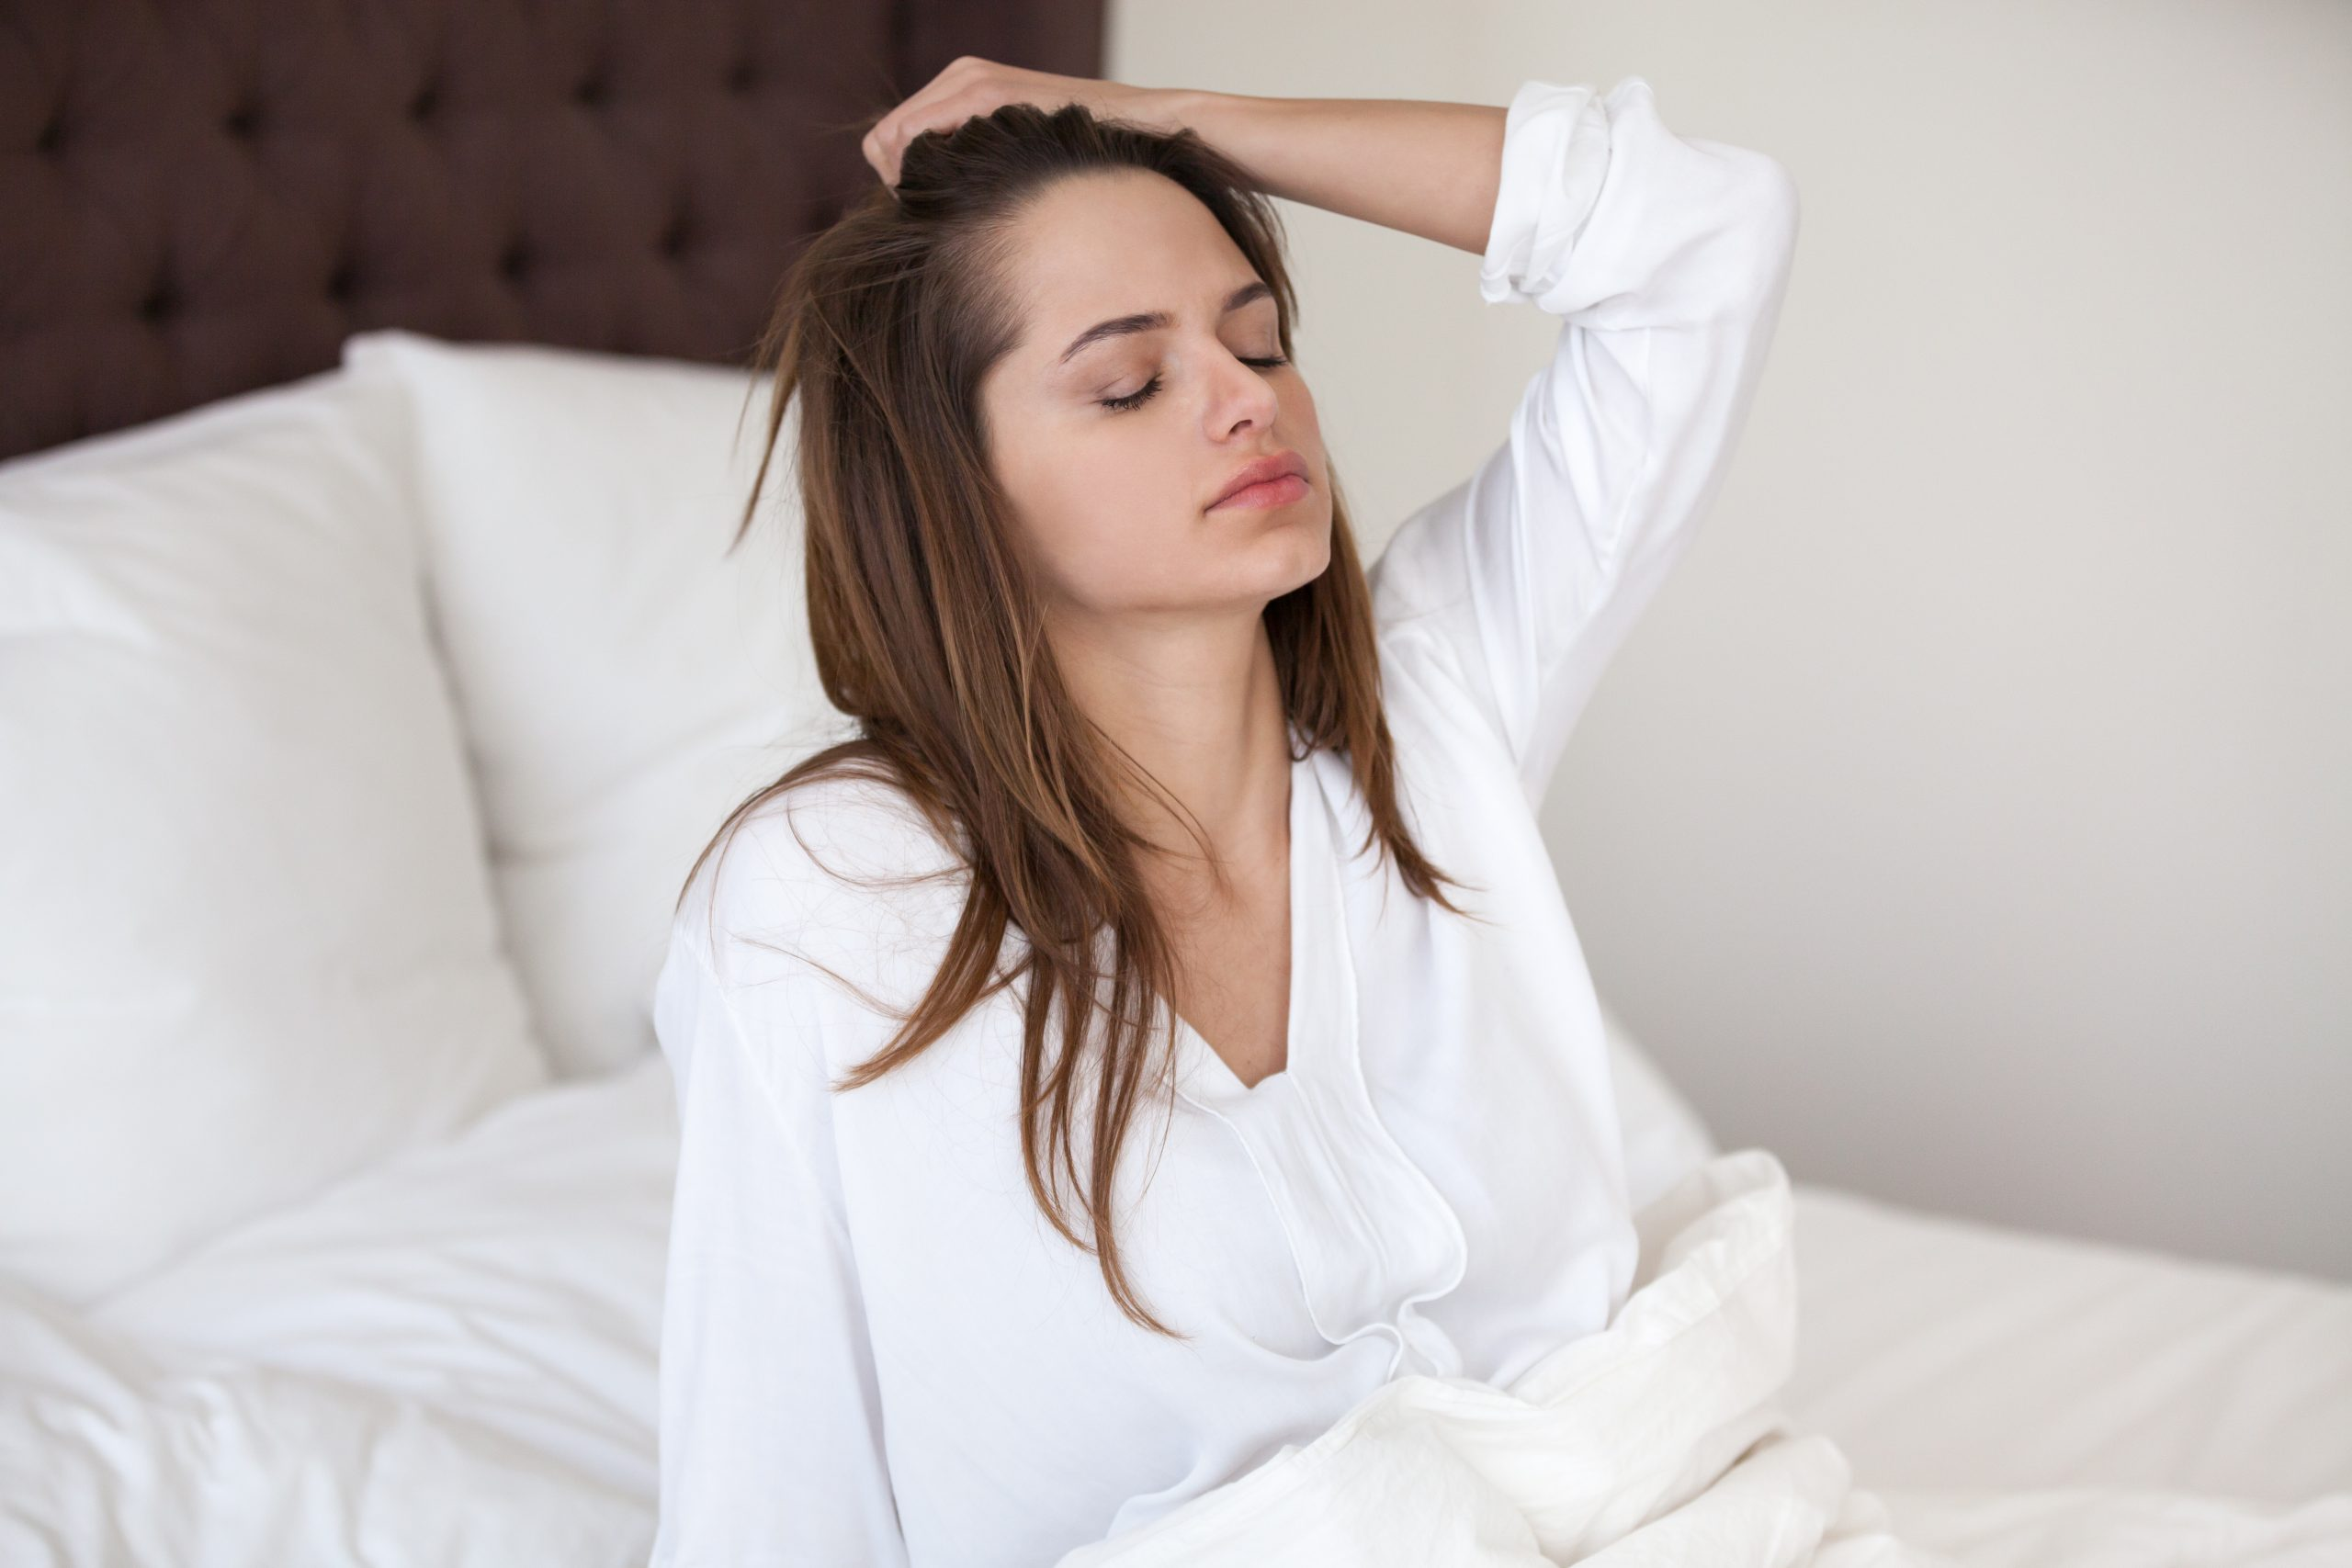 Waking Up with a Headache? 7 Possible Causes & Fixes